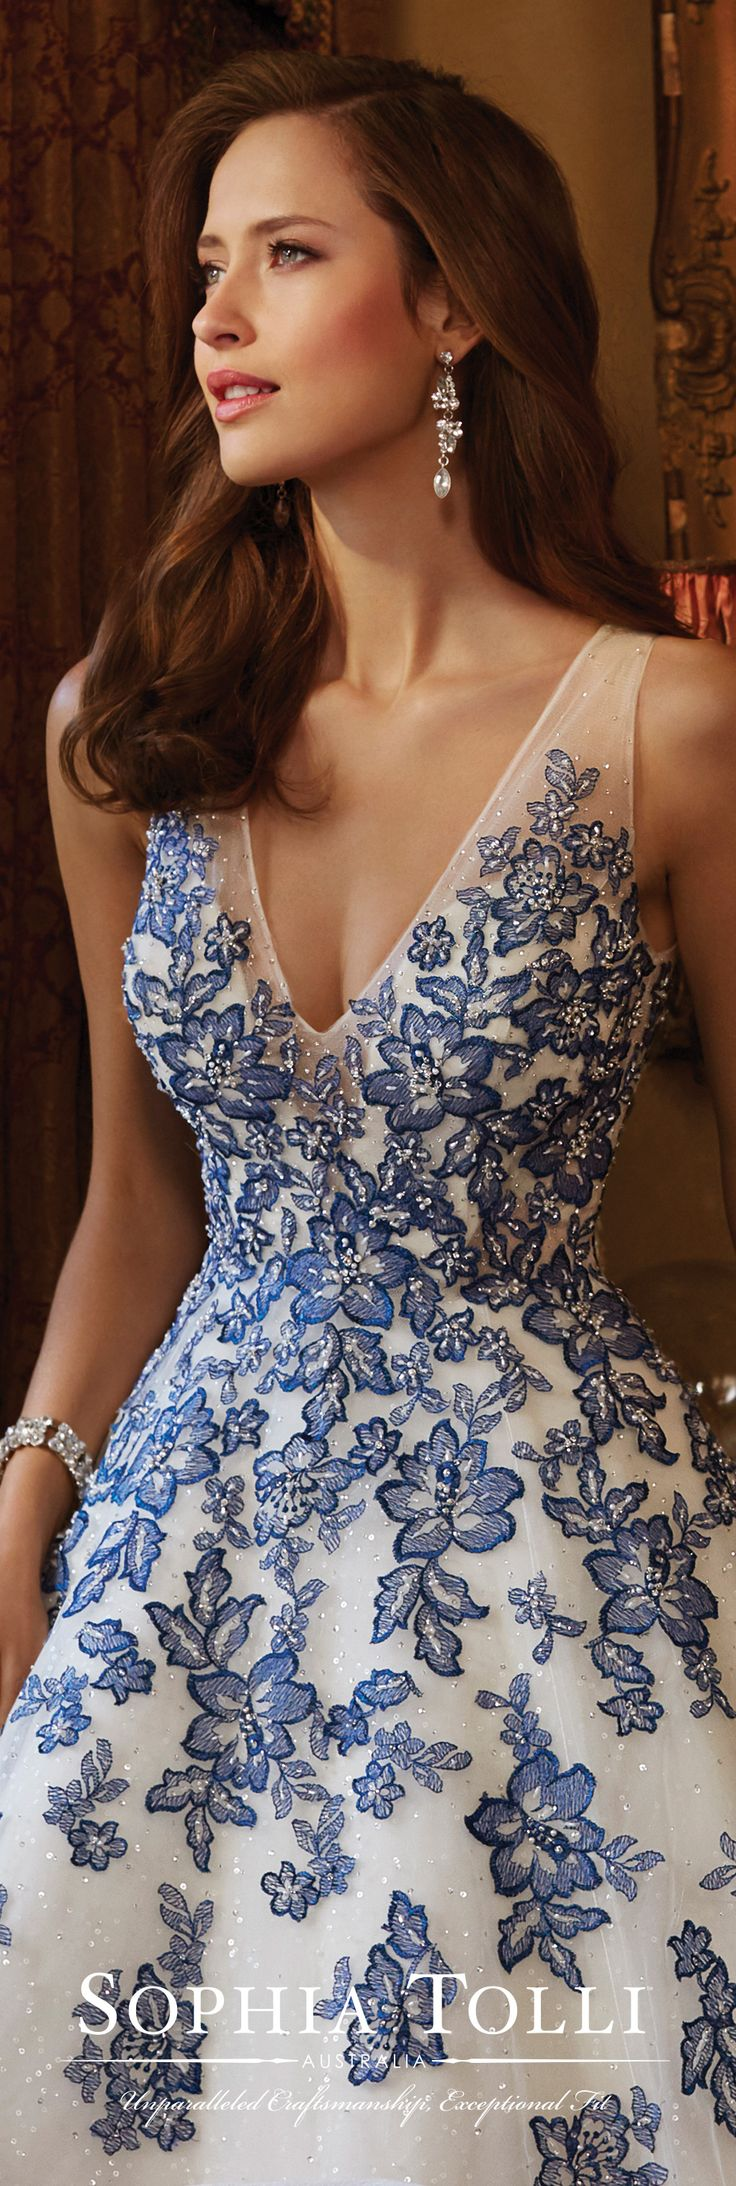 Sophia Tolli Spring 2017 Wedding Gown Collection - Style No. Y11701 Ciel - sleeveless lace and tulle sequin wedding dress with illusion back in Ivory/Sapphire Blue